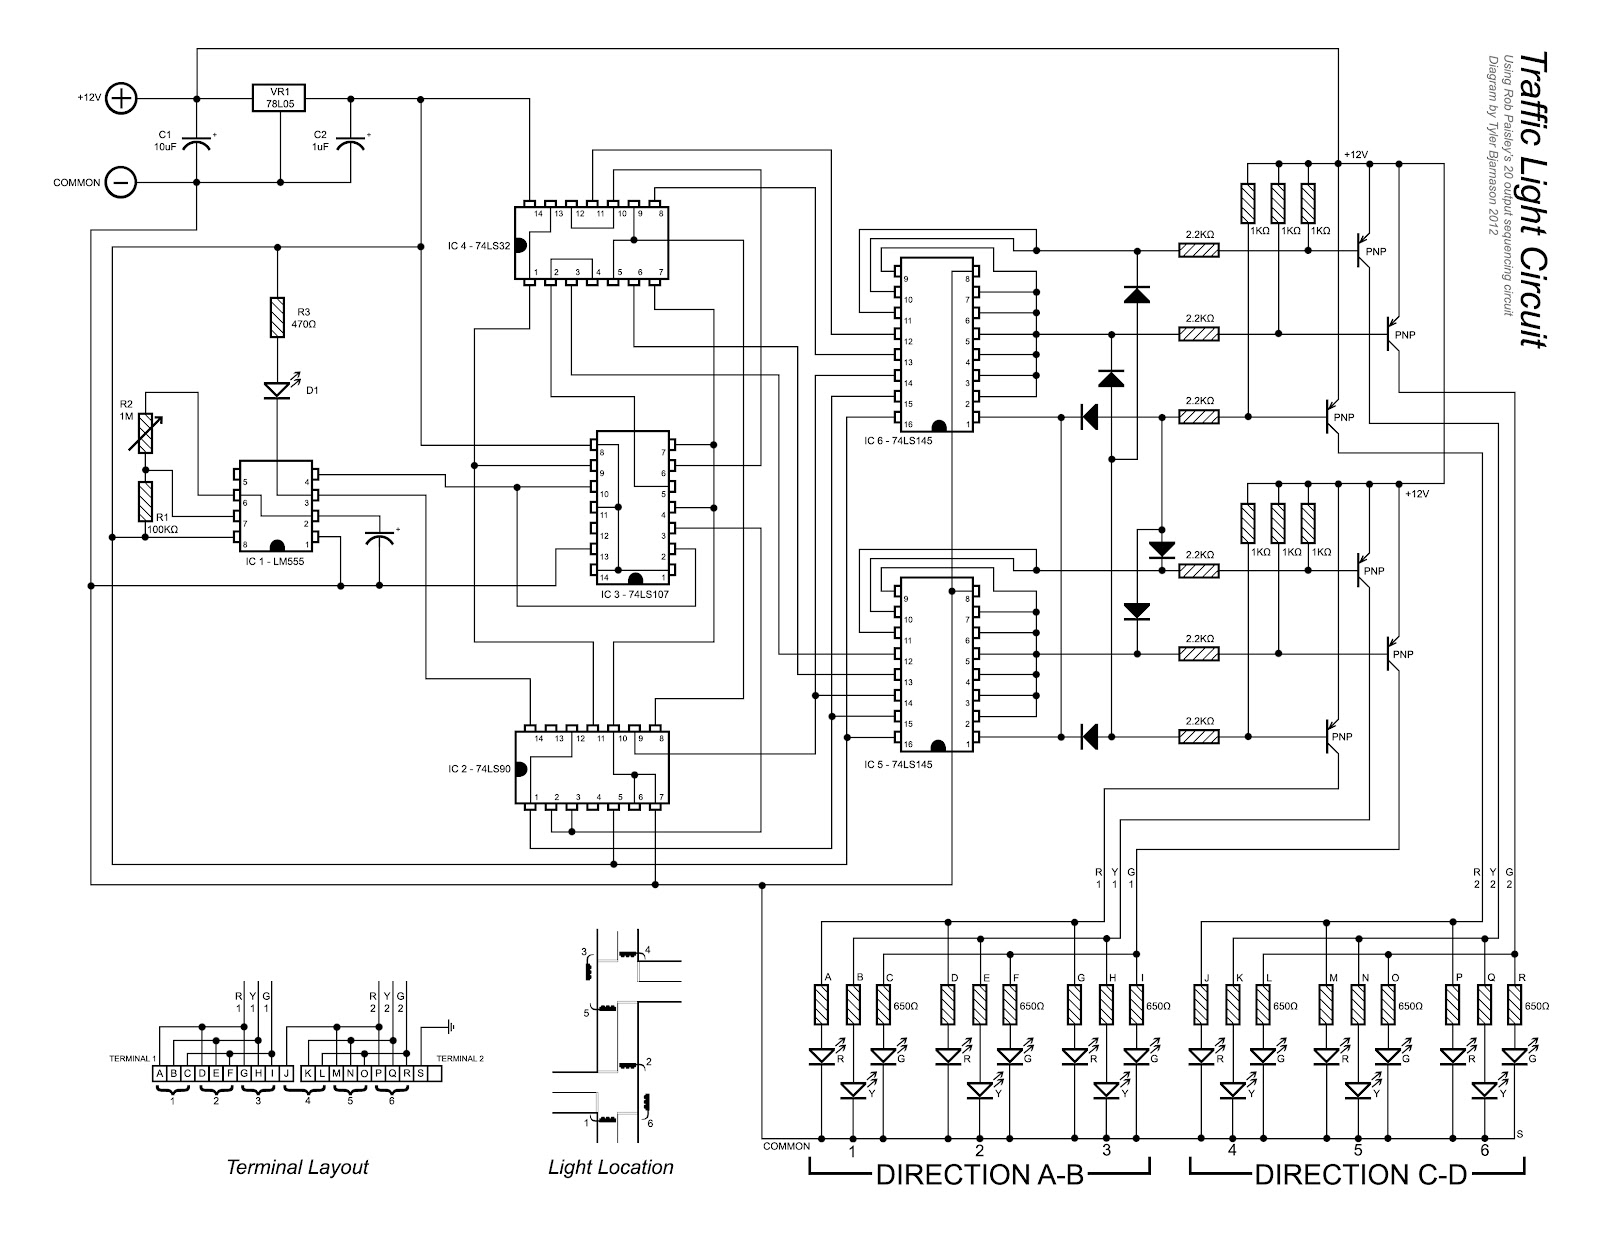 Wiring diagram for lighting control efcaviation douglas lighting control wiring diagram douglas wrc 3260 wiring 1236 asfbconference2016 Choice Image